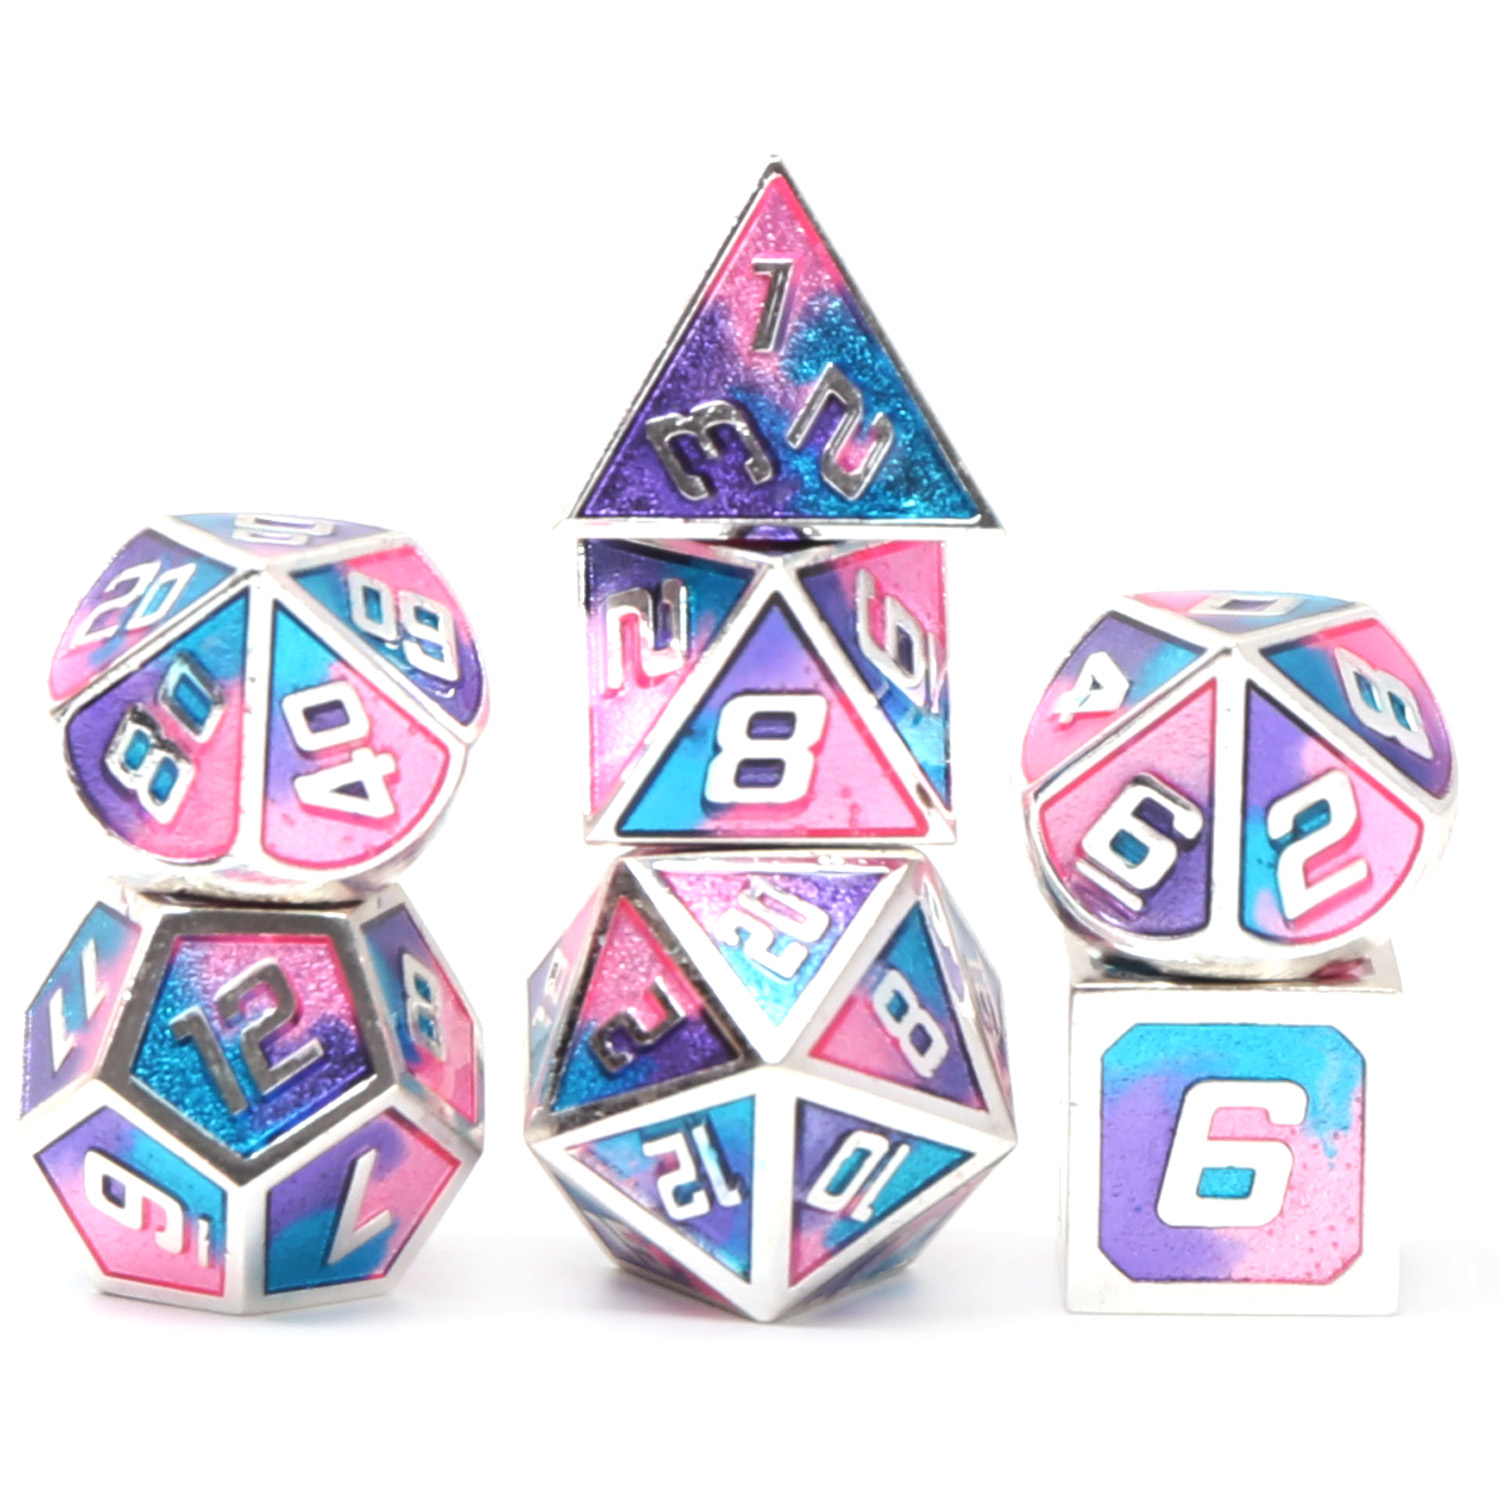 Chengshuo Dnd Dice Metal Rpg Set Polyhedral Dungeons And Dragons D20 10 8 12 Table Game Zinc Alloy Silvery Digital Dices Pattern